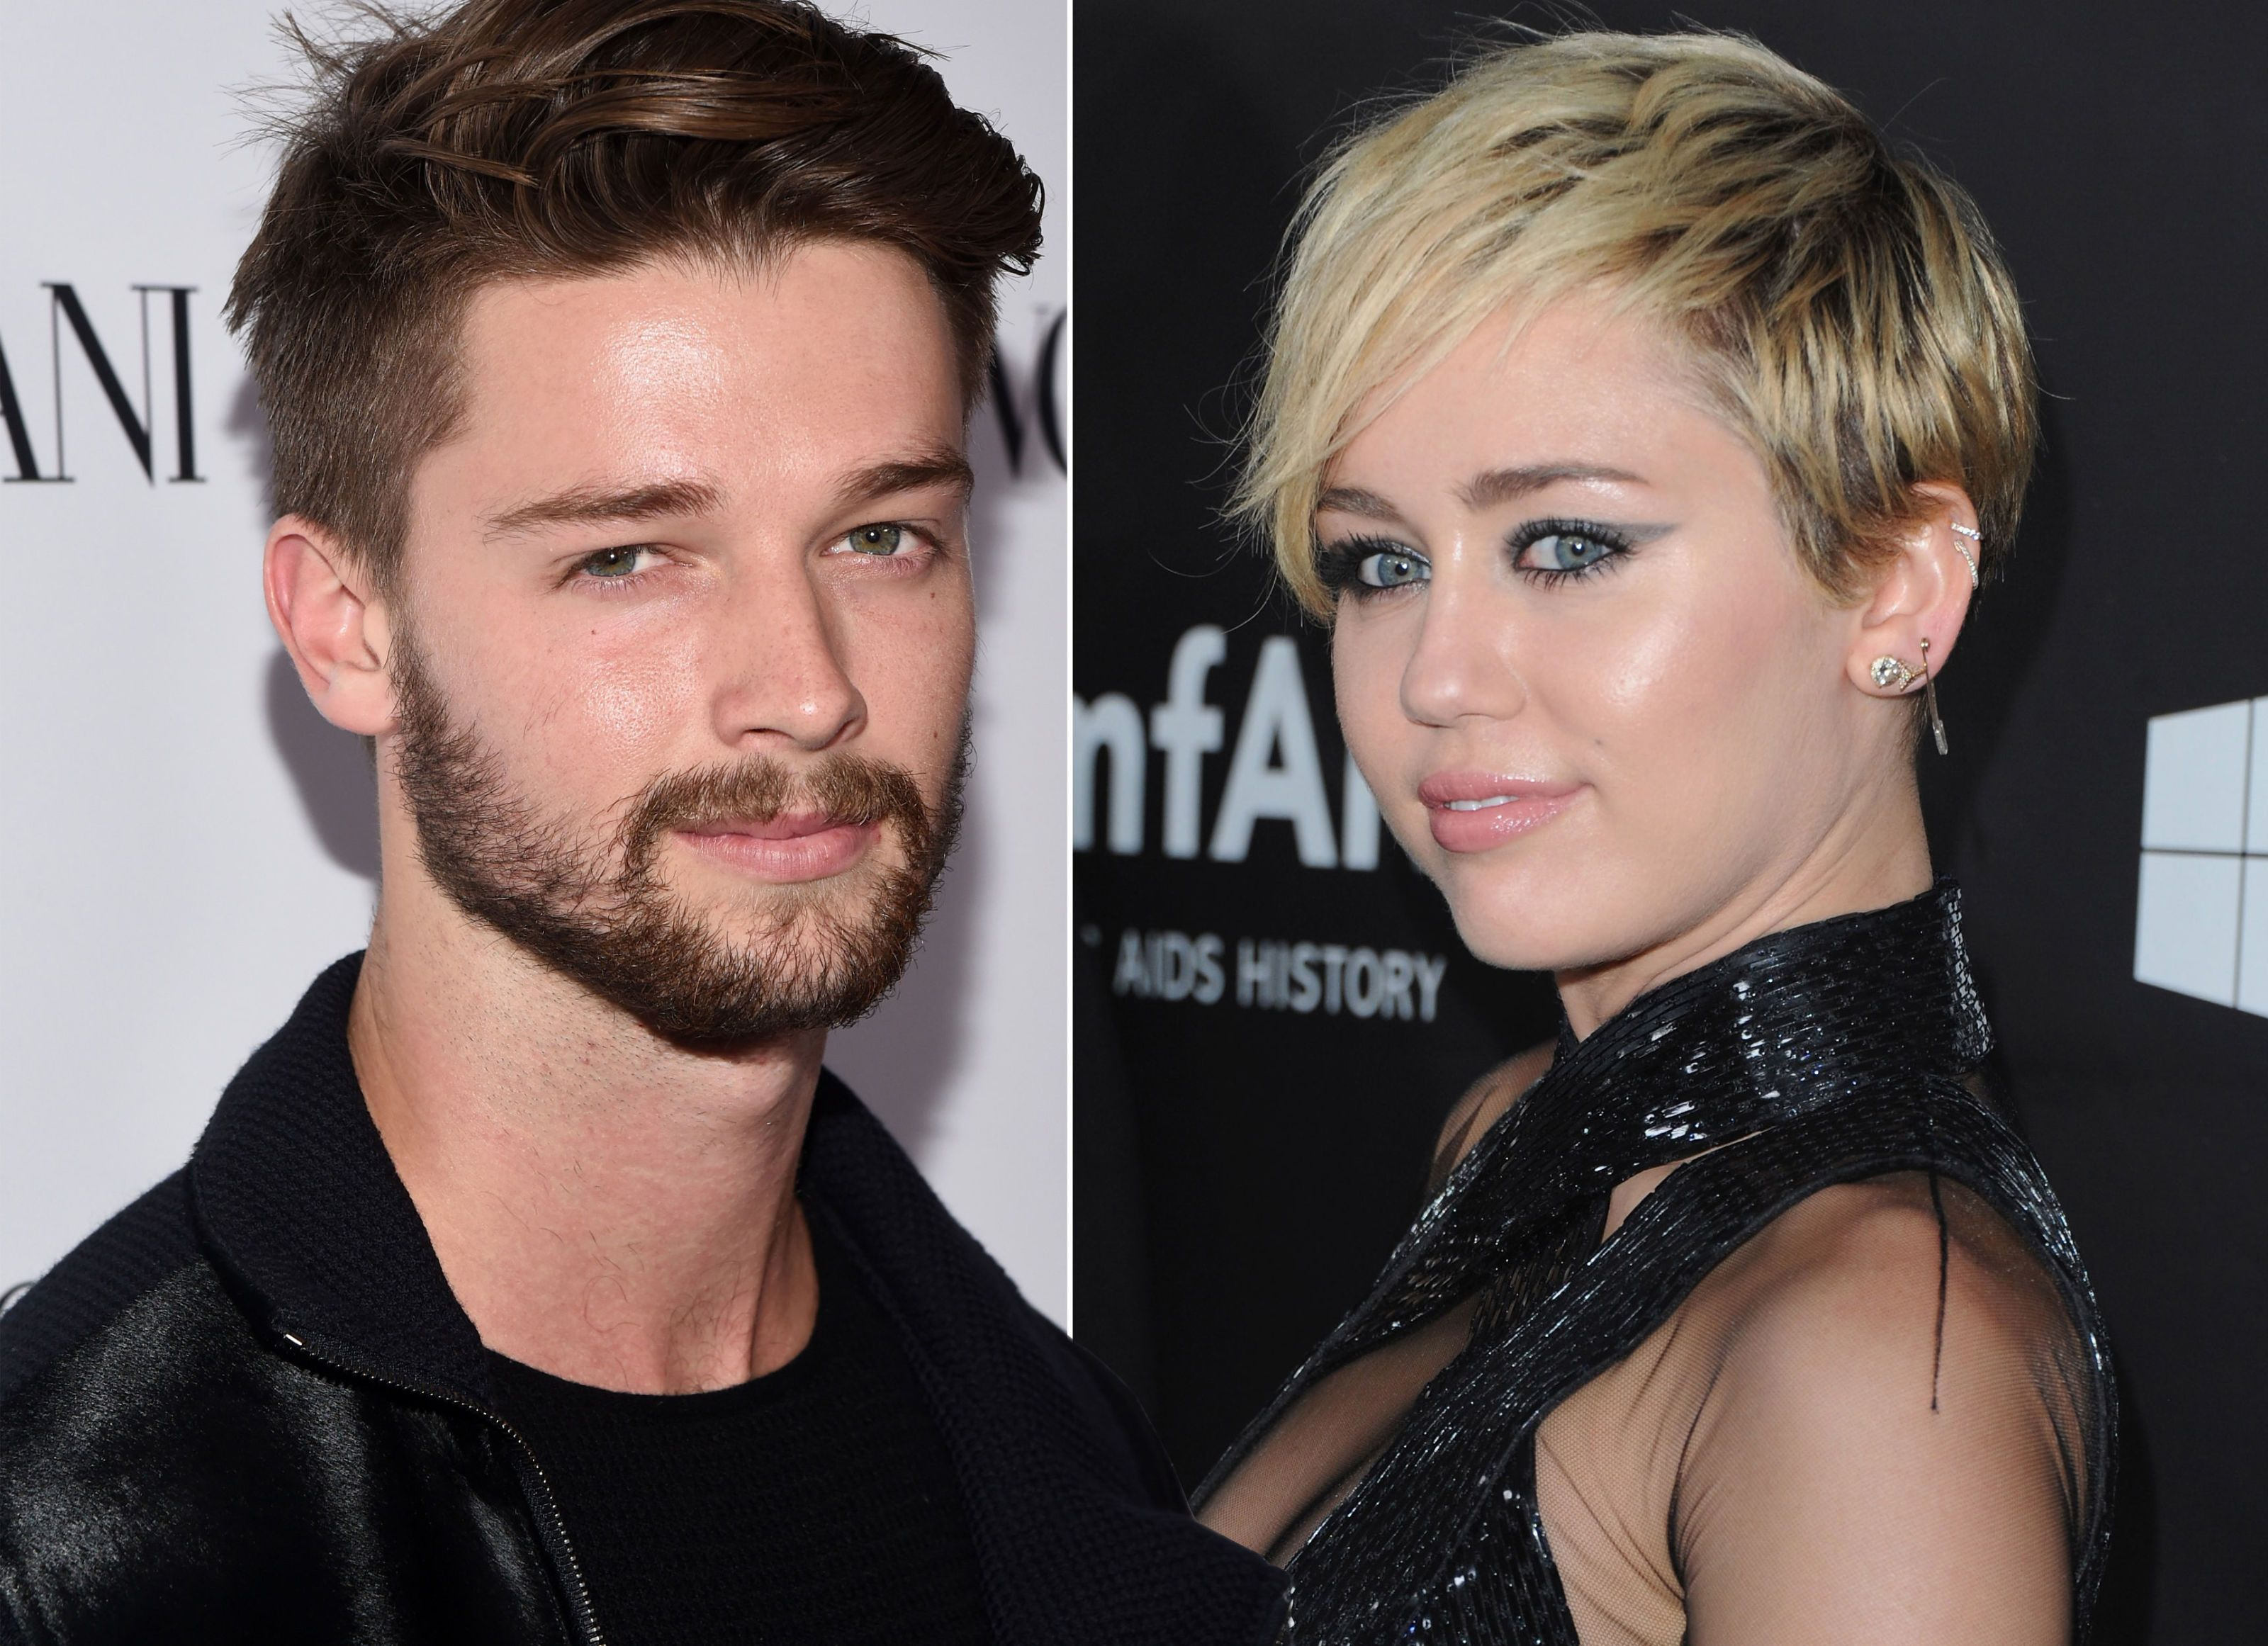 Miley cyrus dating arnold schwarzenegger son